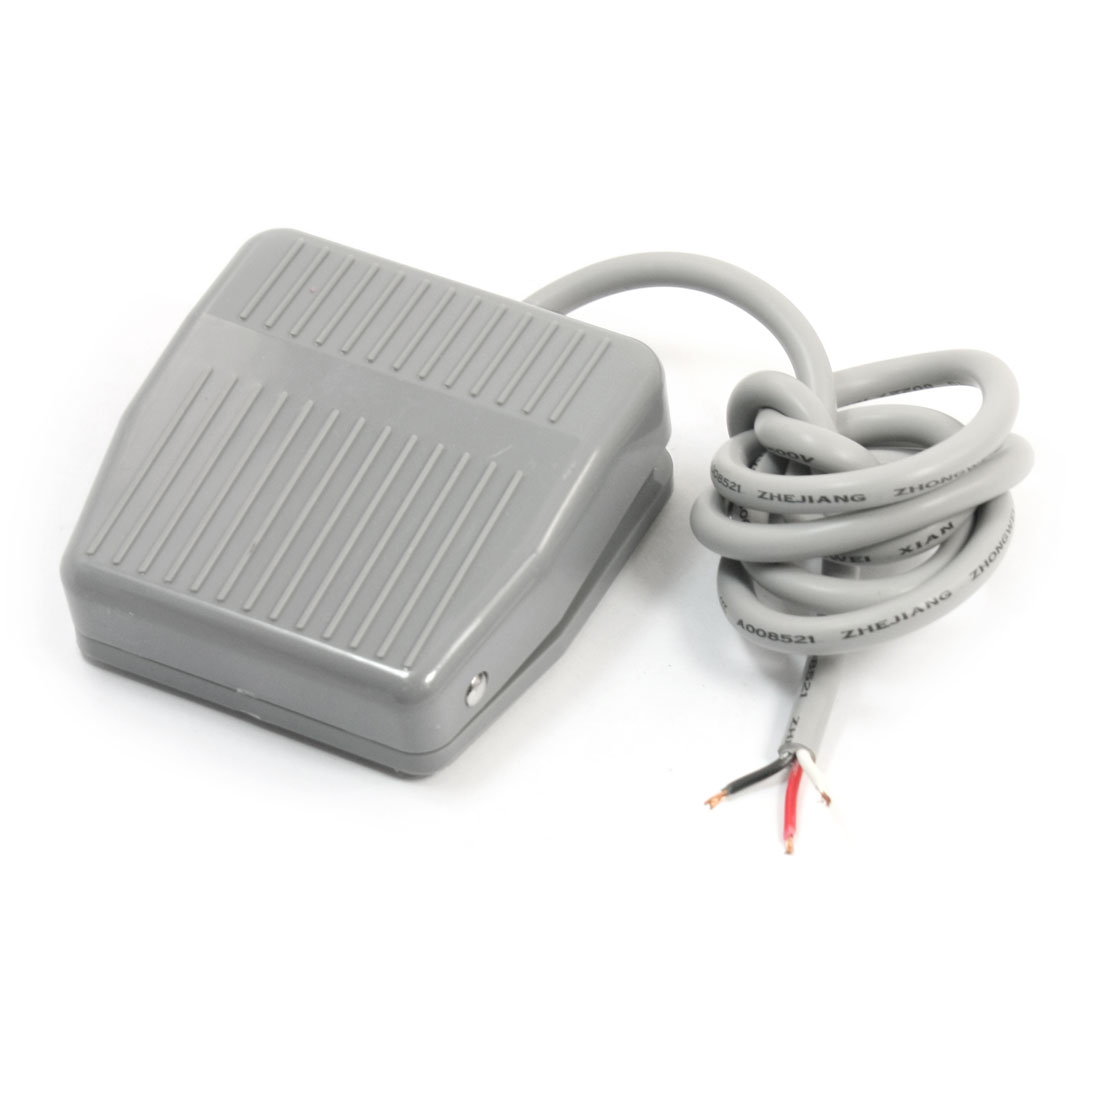 Ui 250V Ith 10A SPDT 1NO 1NC Momentary Hand Free Nonslip Gray Metal Foot Pedal Switch 1m 3.3ft CFS-201